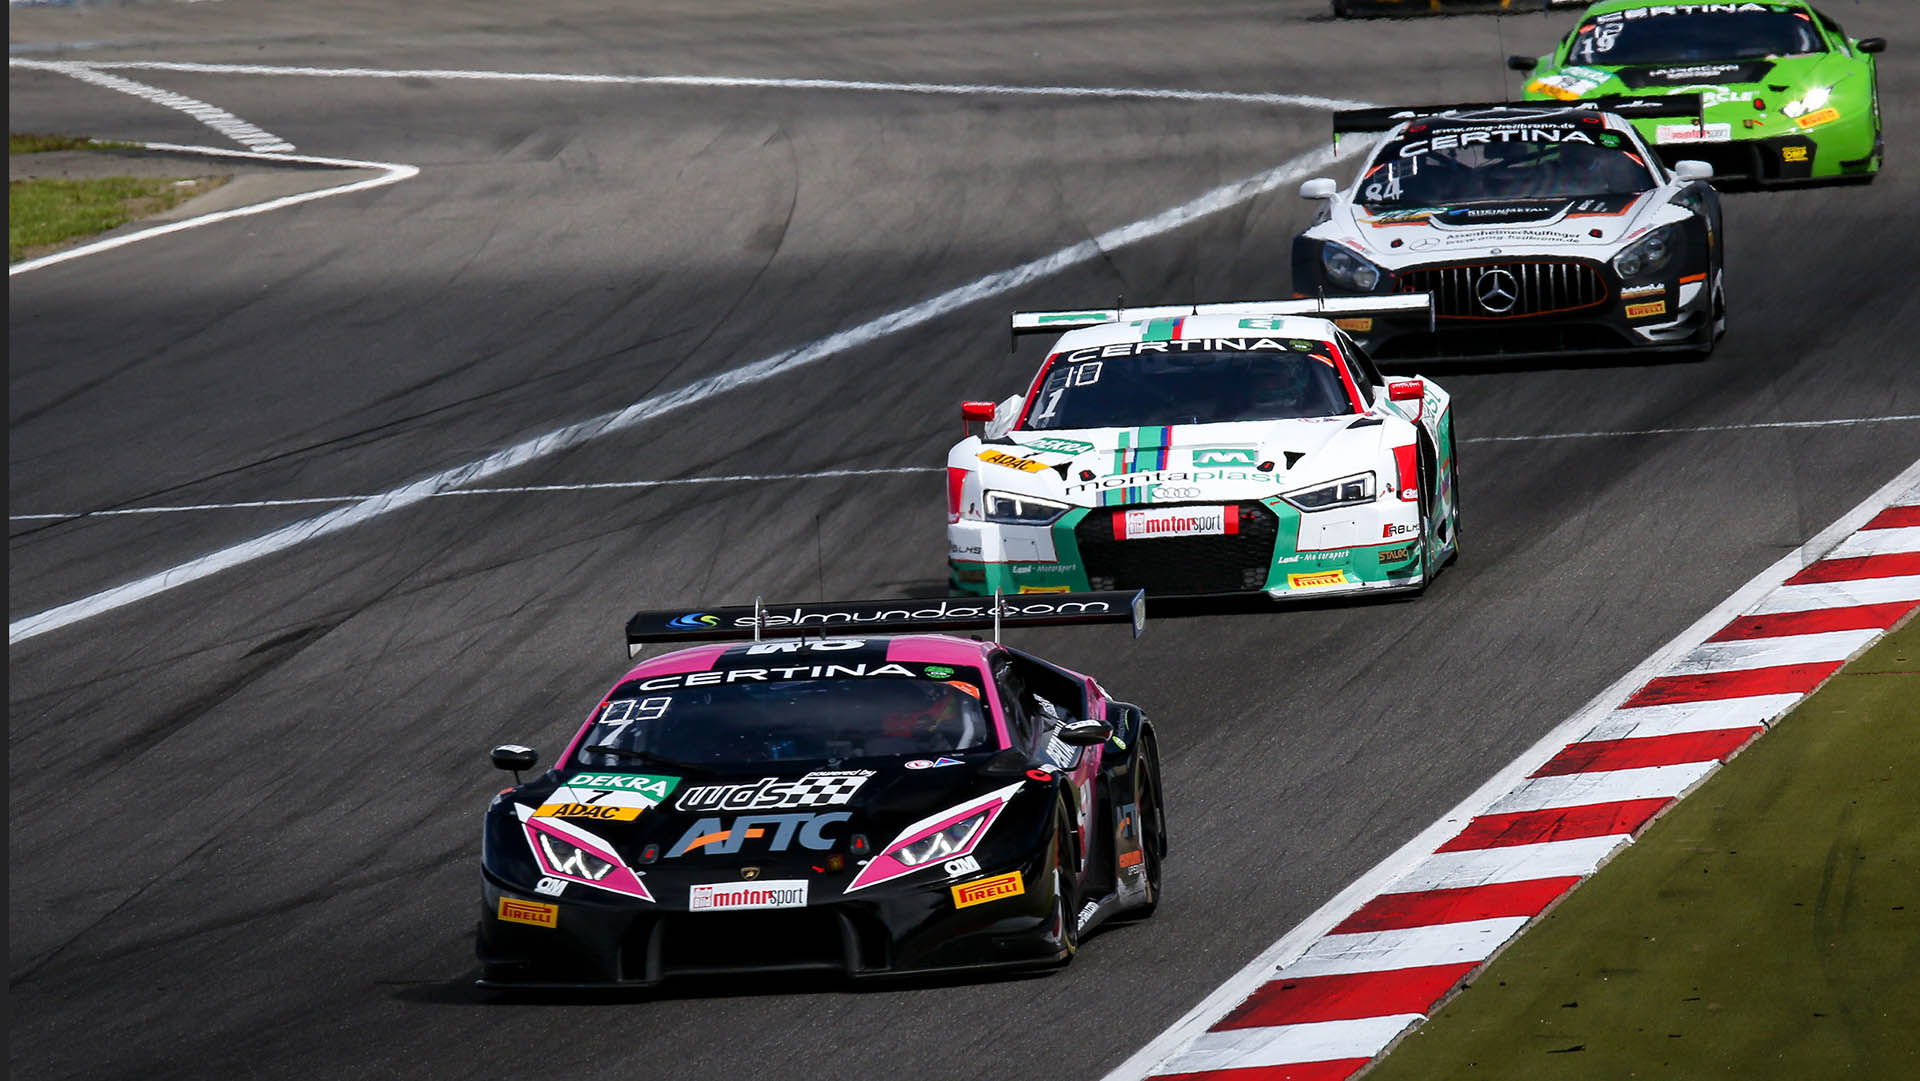 ADAC GT Masters, 9. + 10. Lauf - Nürburgring 2017 - Foto: Gruppe C Photography